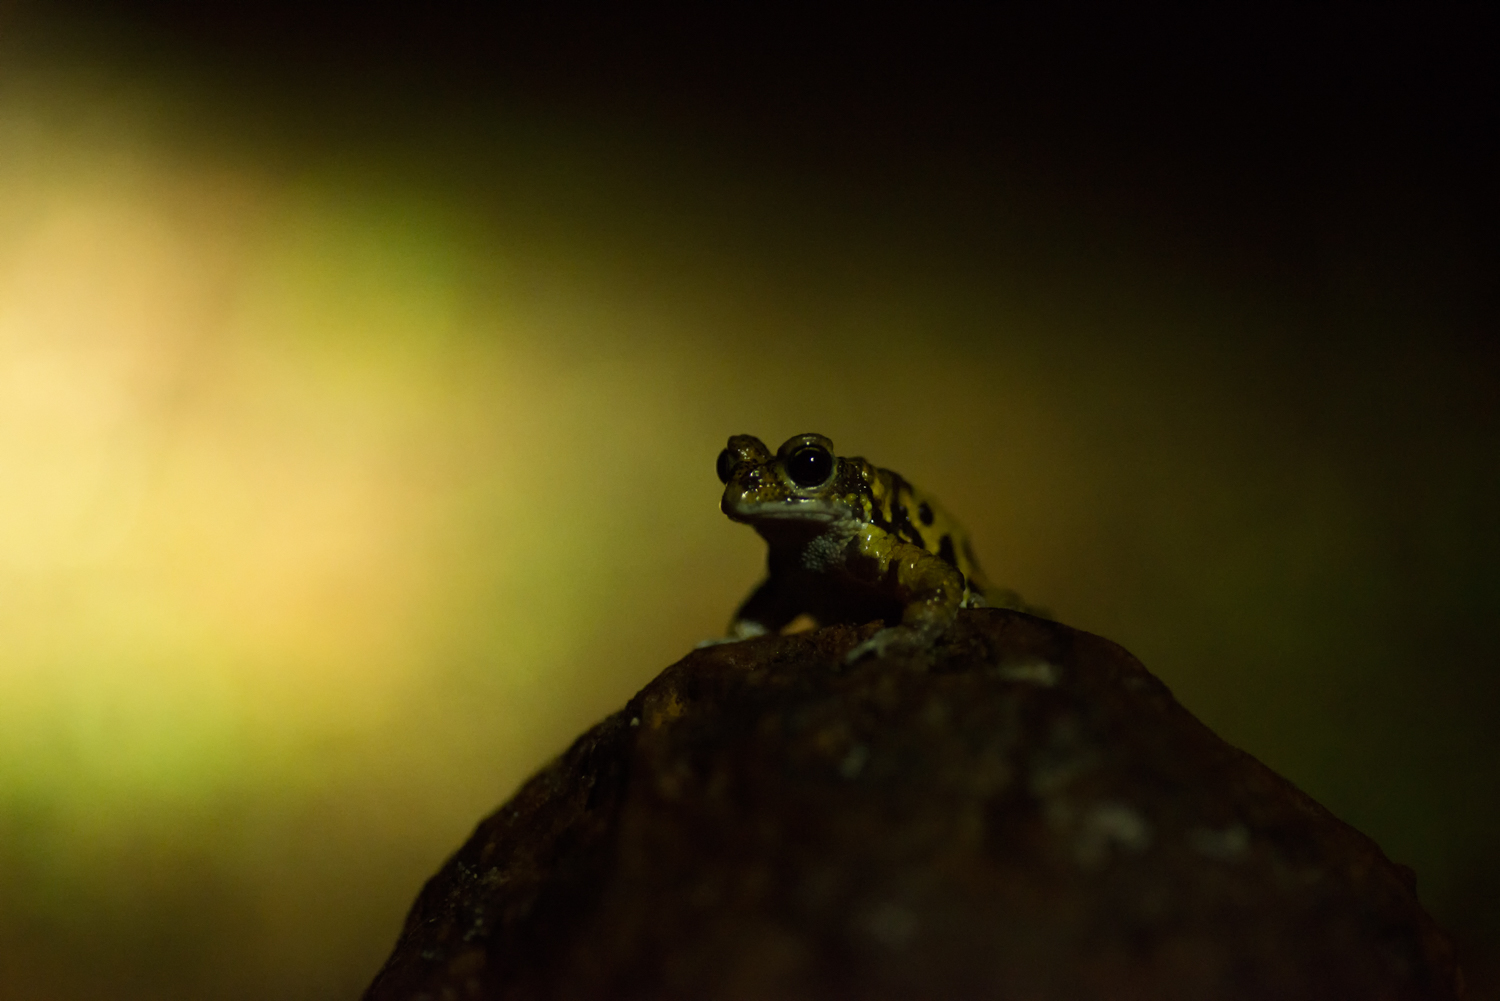 Washed clean by the rains, the plateau is a haven for frogs.  Xanthophryne tigerina , endemic to the Northern Western Ghats calls over the din of the rain, signaling to potential females on the plateau.